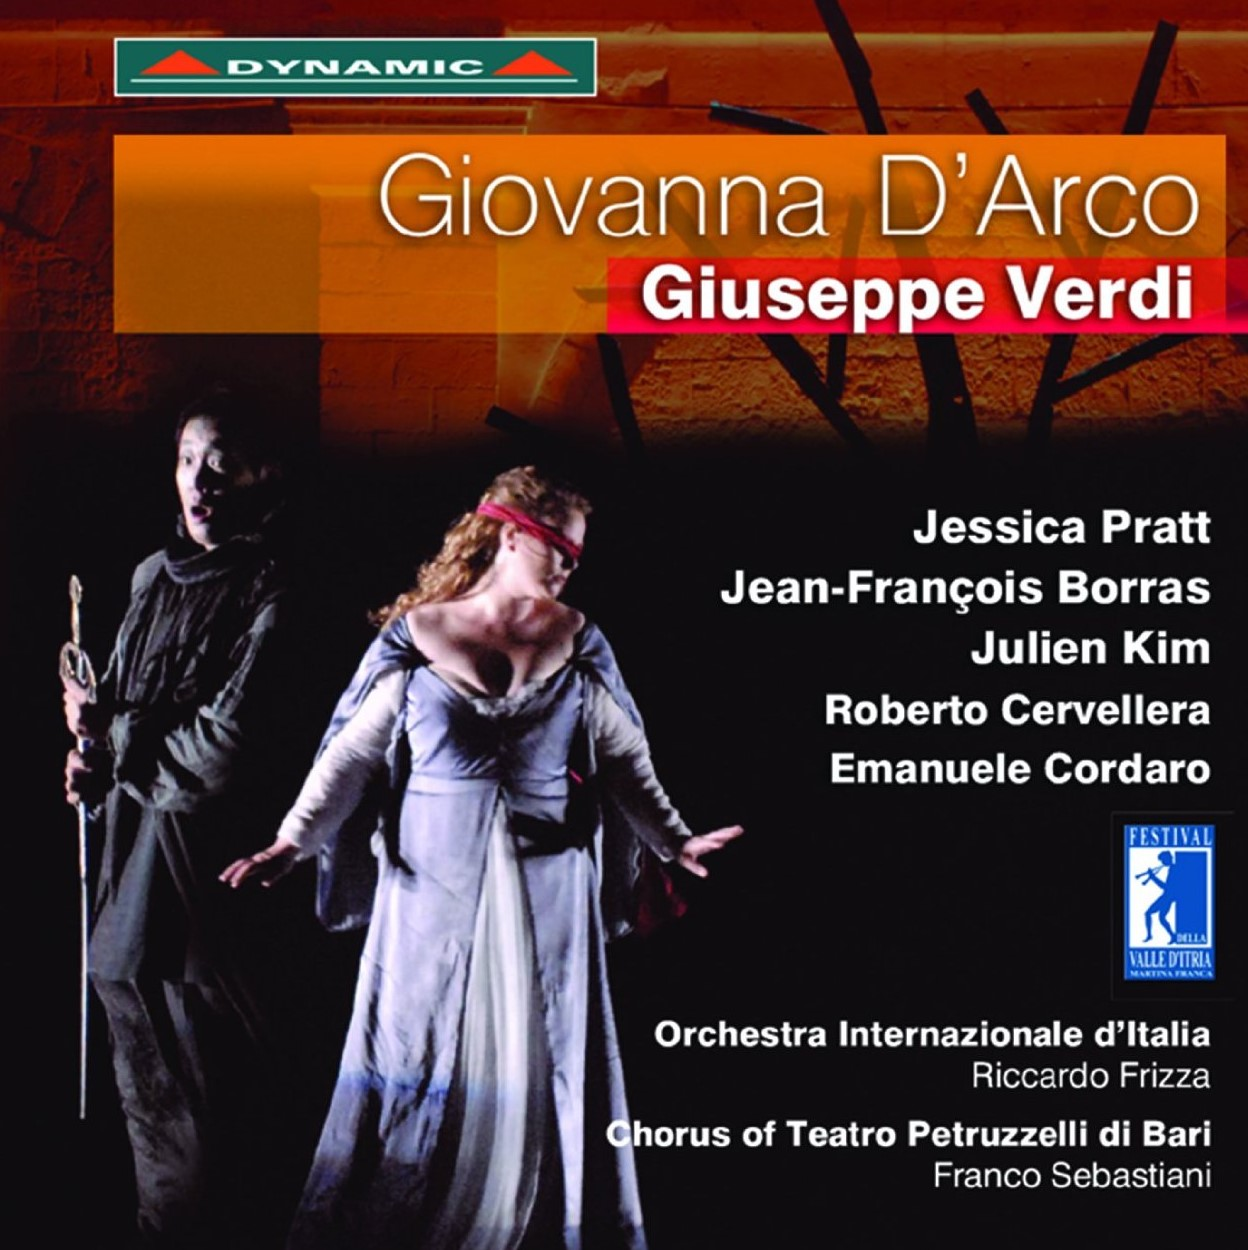 Lady with a mission: Soprano Jessica Pratt, star of Festivale della Valle d'Itria's 2013 production of Giuseppe Verdi's Giovanna d'Arco, released on CD and DVD by Dynamic [Cover art © by Dynamic]